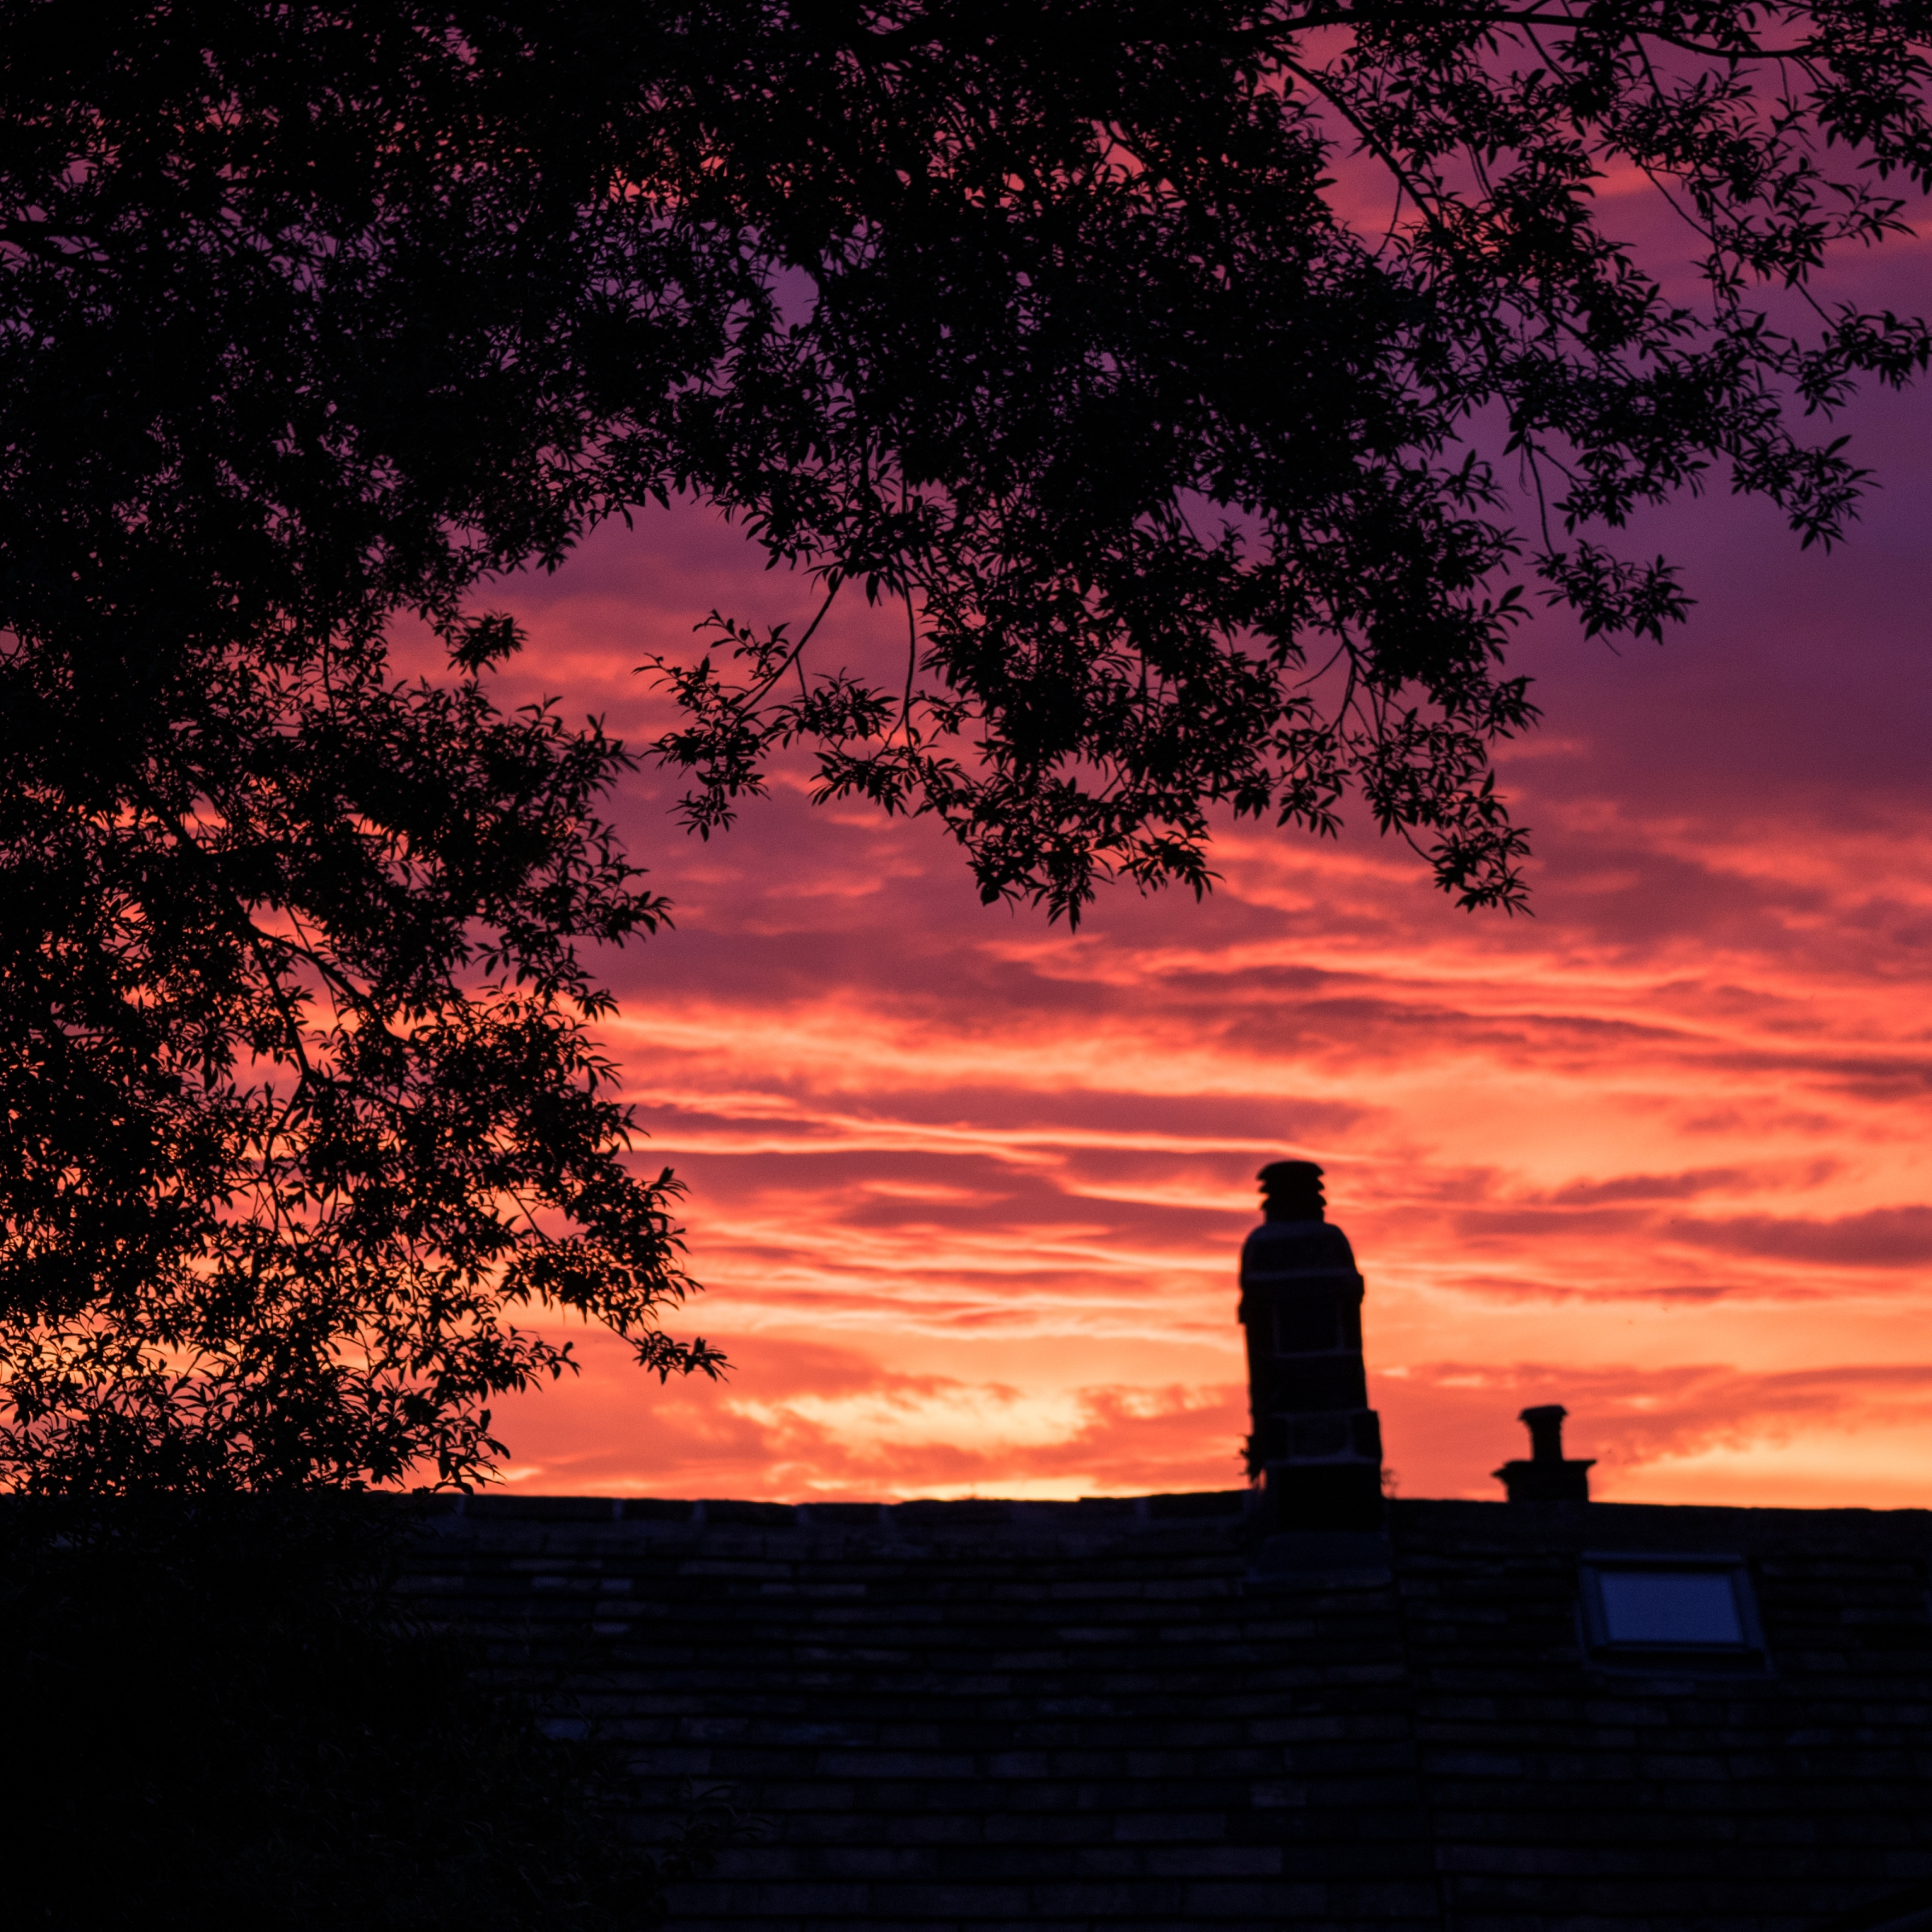 sunset over Grassington UK